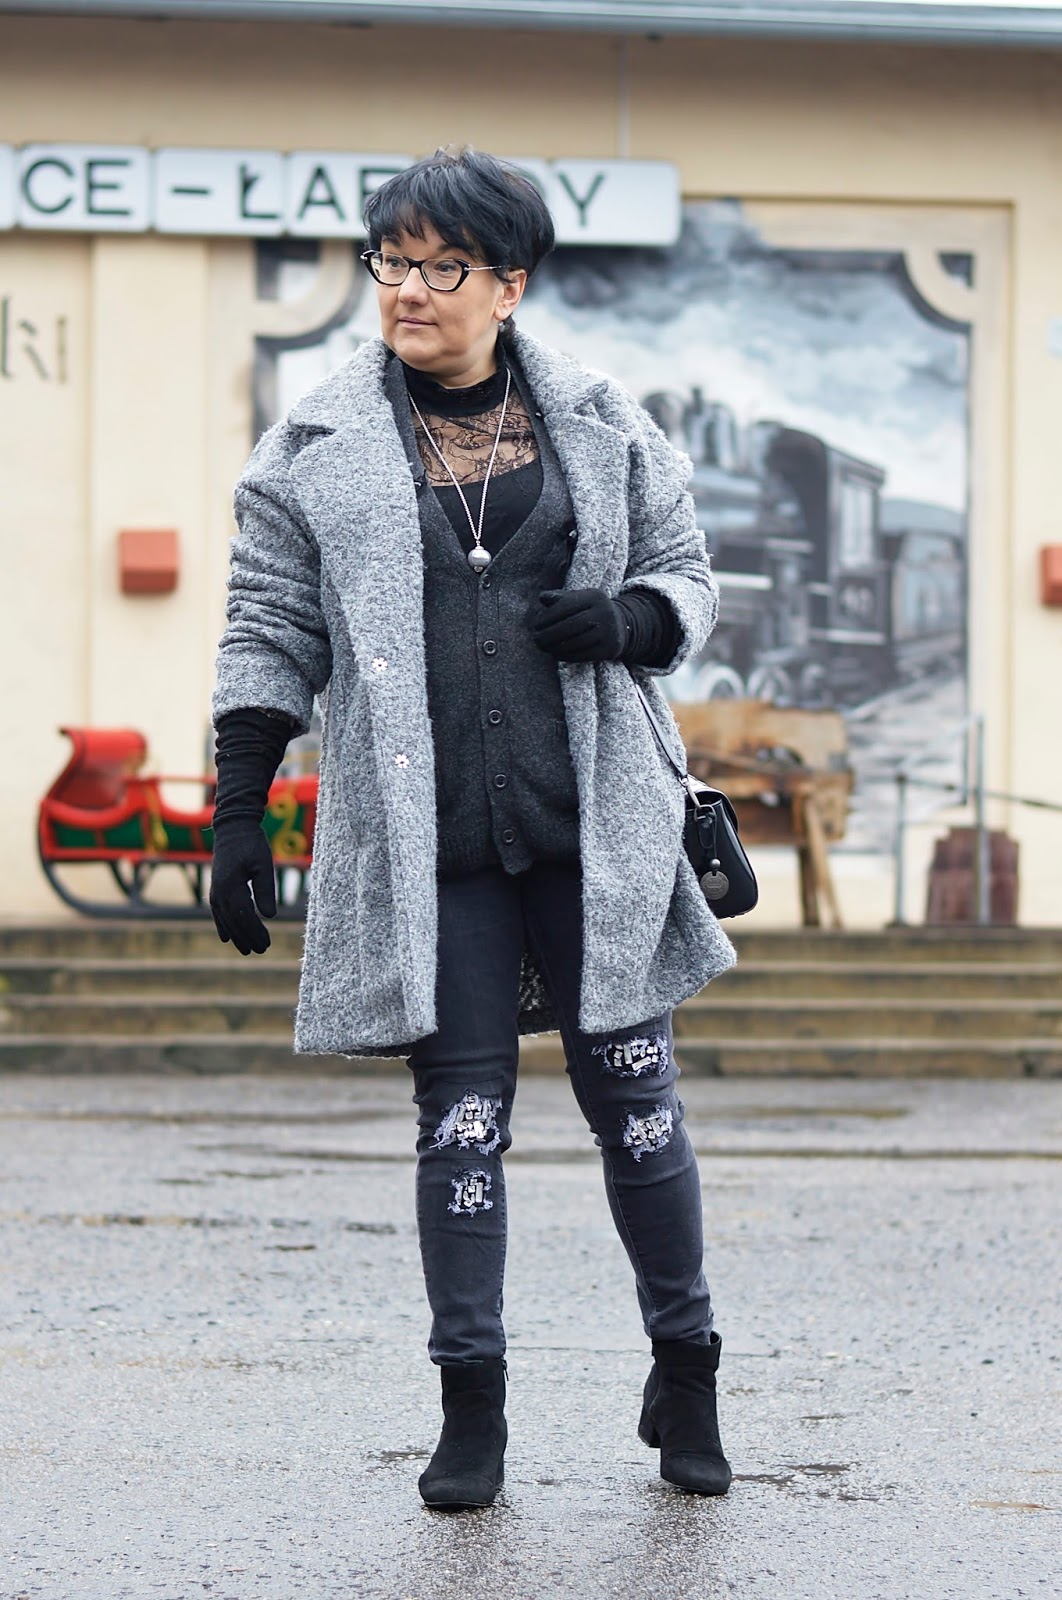 shades of grey, grey stylization, grey coat